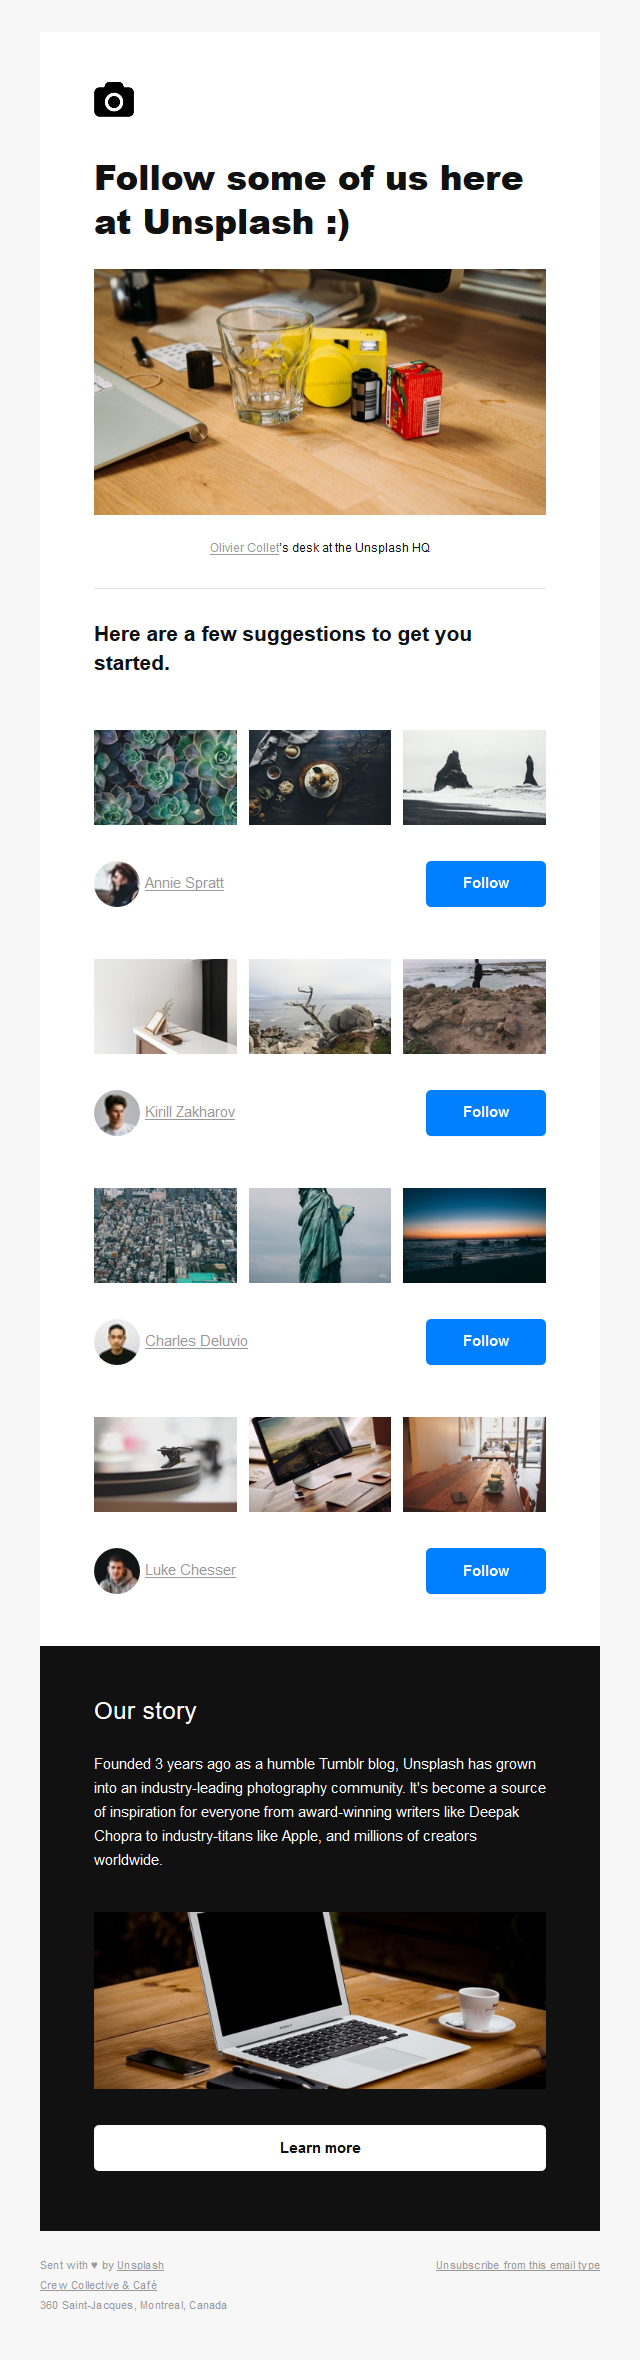 Feed your feed: Follow some photographers